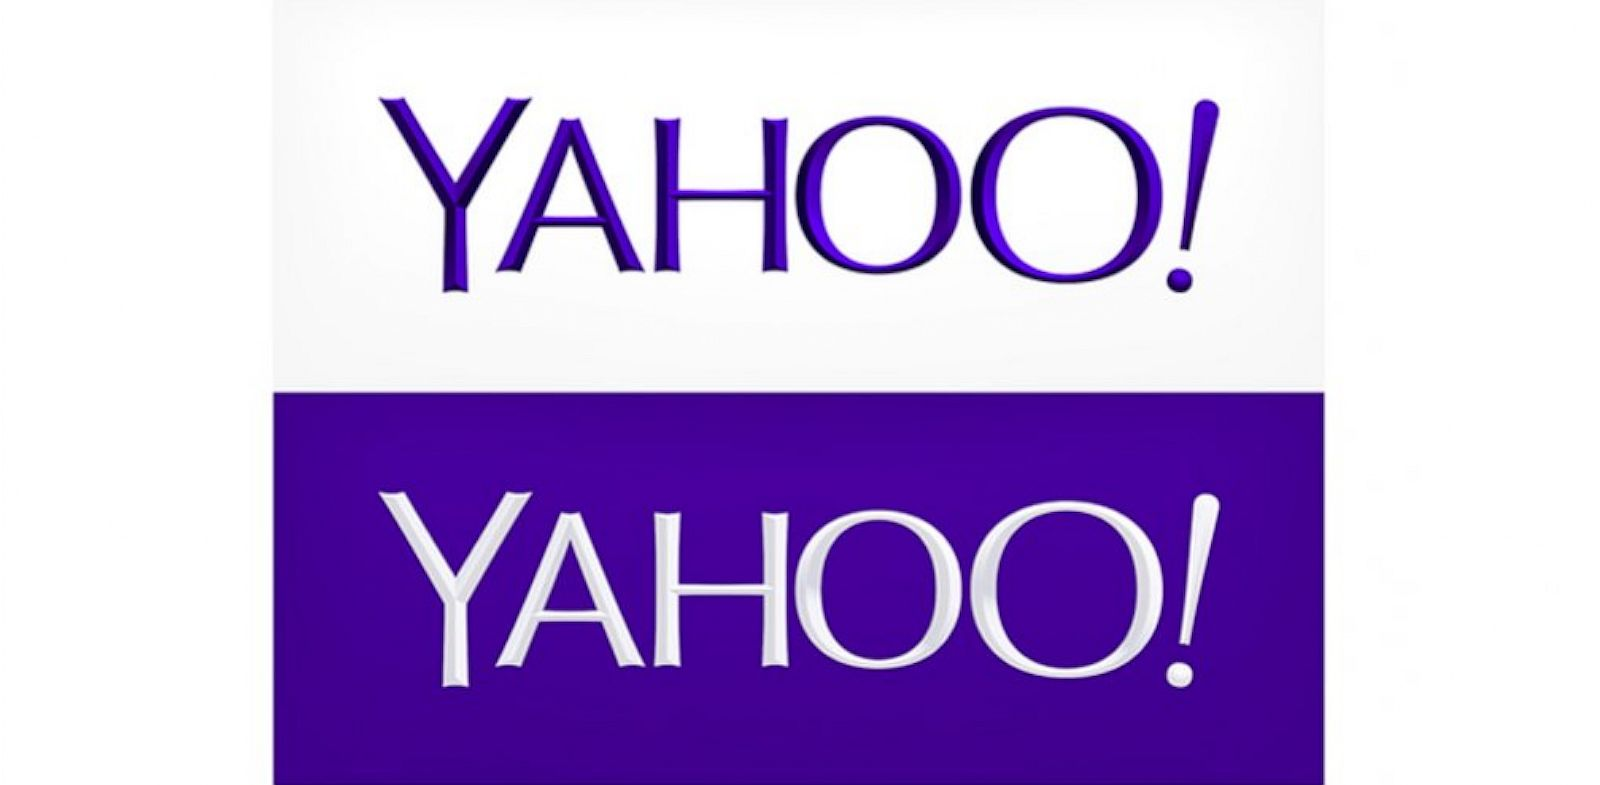 Yahoo news - How Yahoo Mail Just Killed The Need For A Password